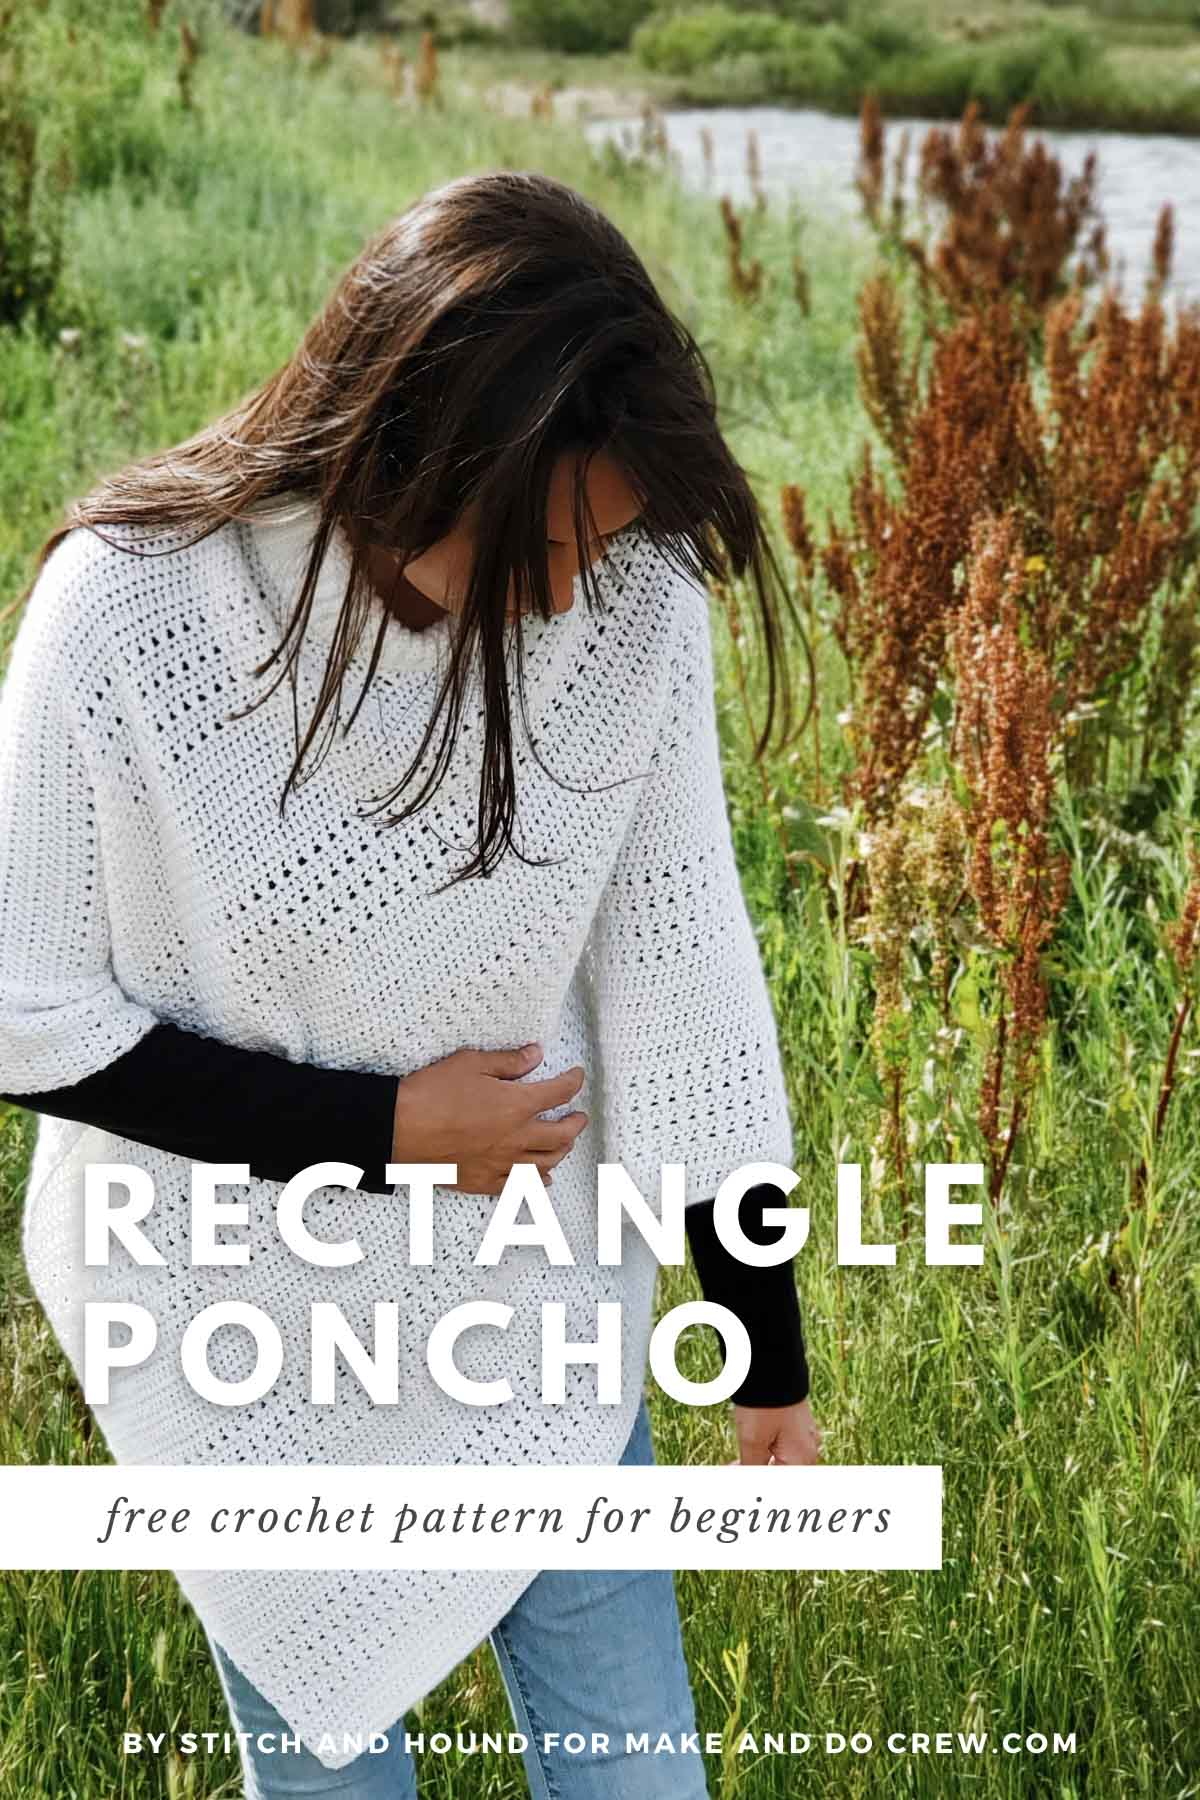 The construction of this crochet poncho made from a rectangle could not be easier. You'll love the delicate drape and cruise-control stitches.